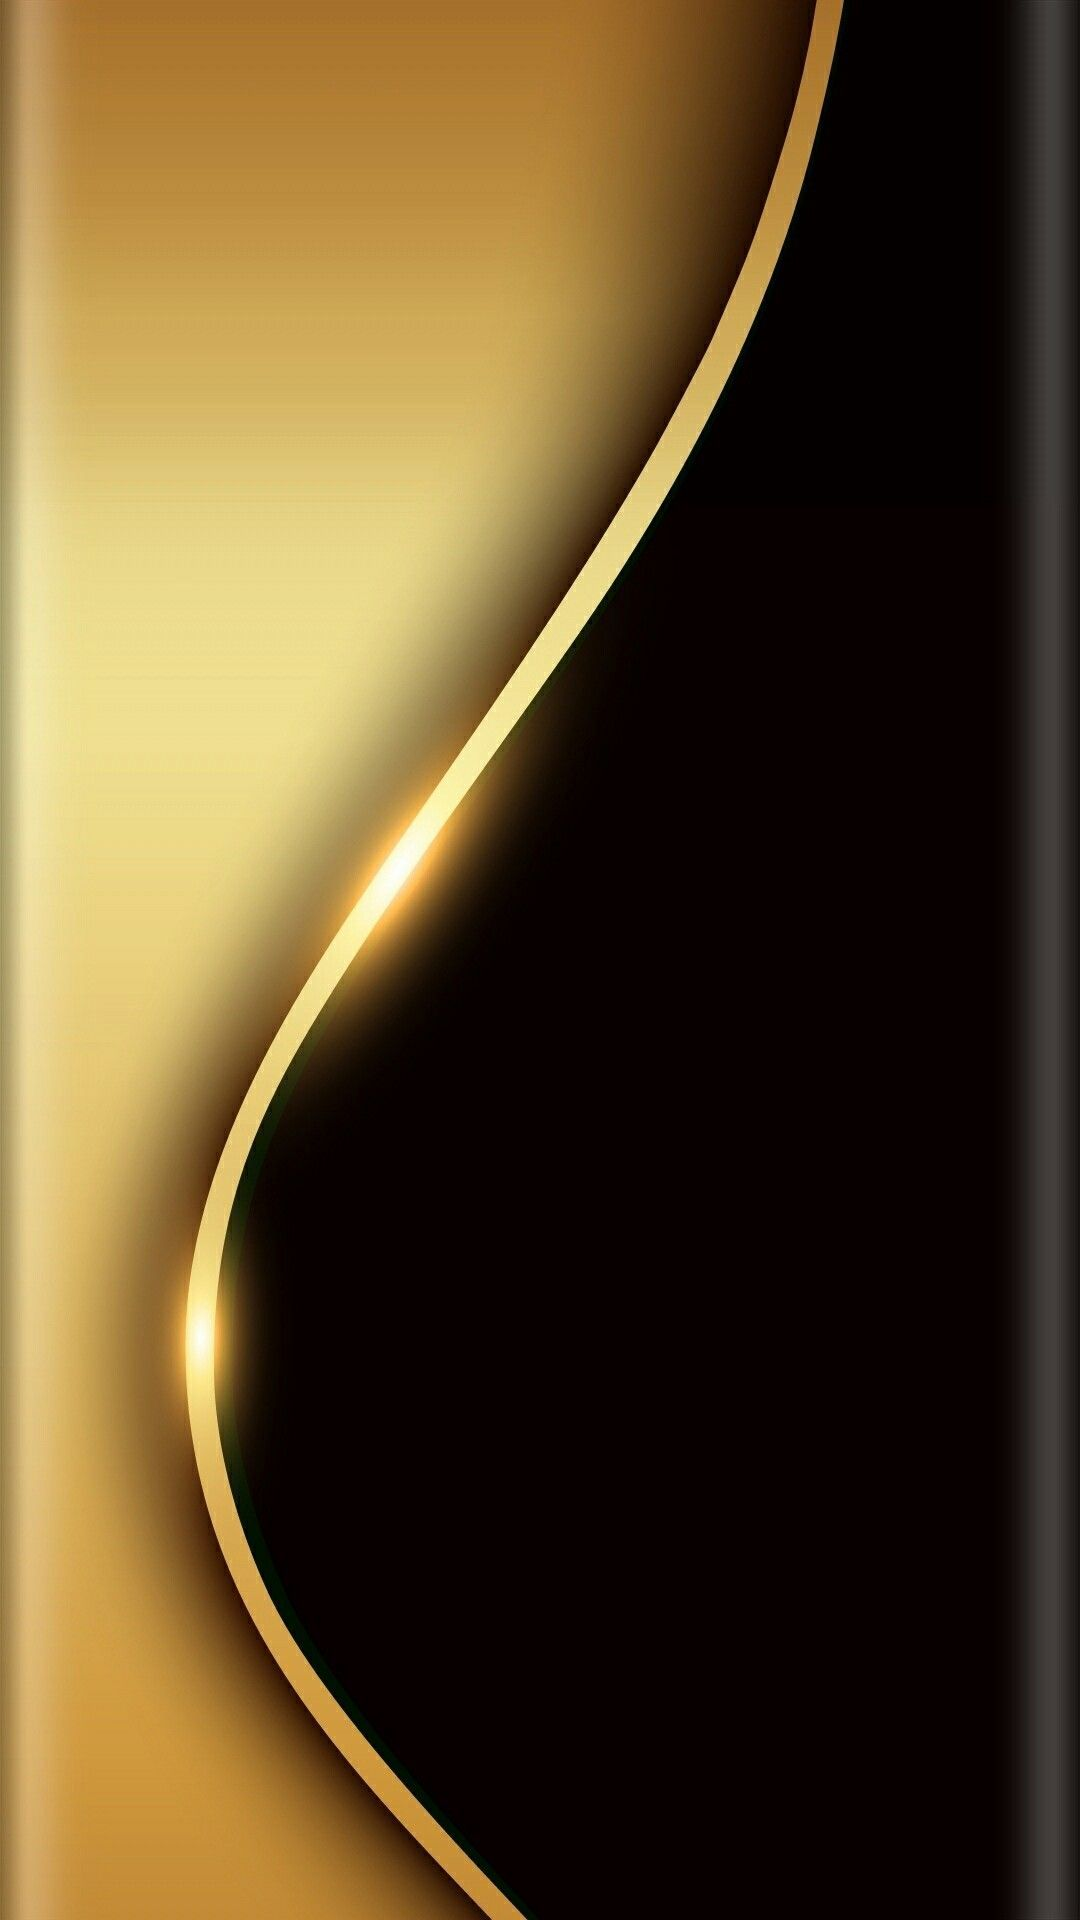 List of Cool Abstract Phone Wallpaper HD 2020 by 123artwallpaper.blogspot.com